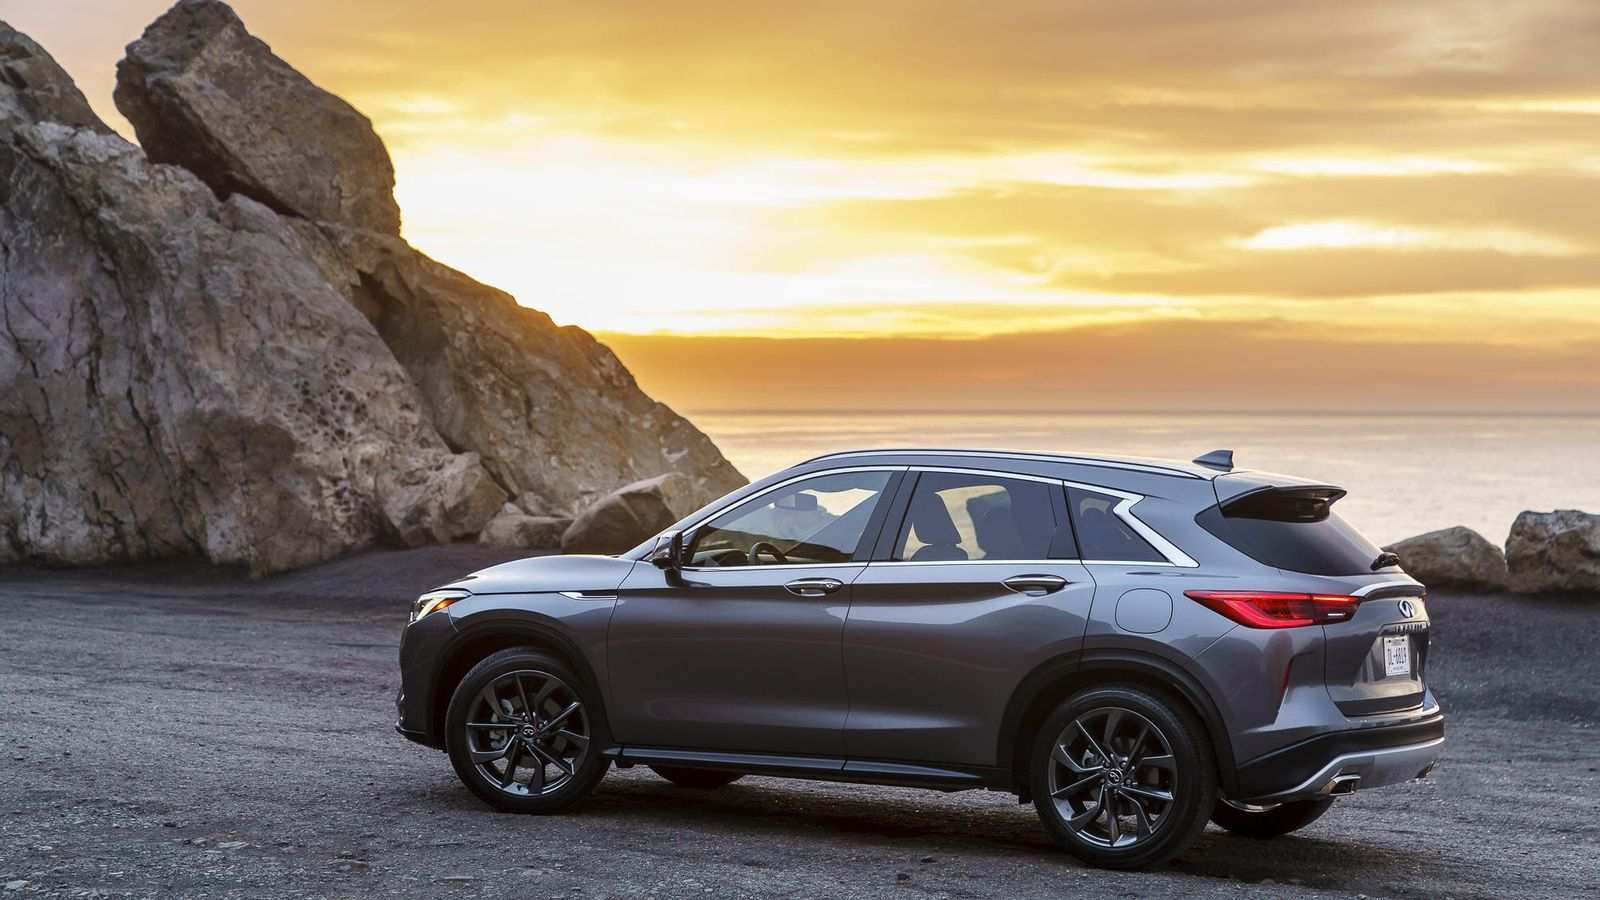 52 All New Infiniti Qx50 2020 Redesign